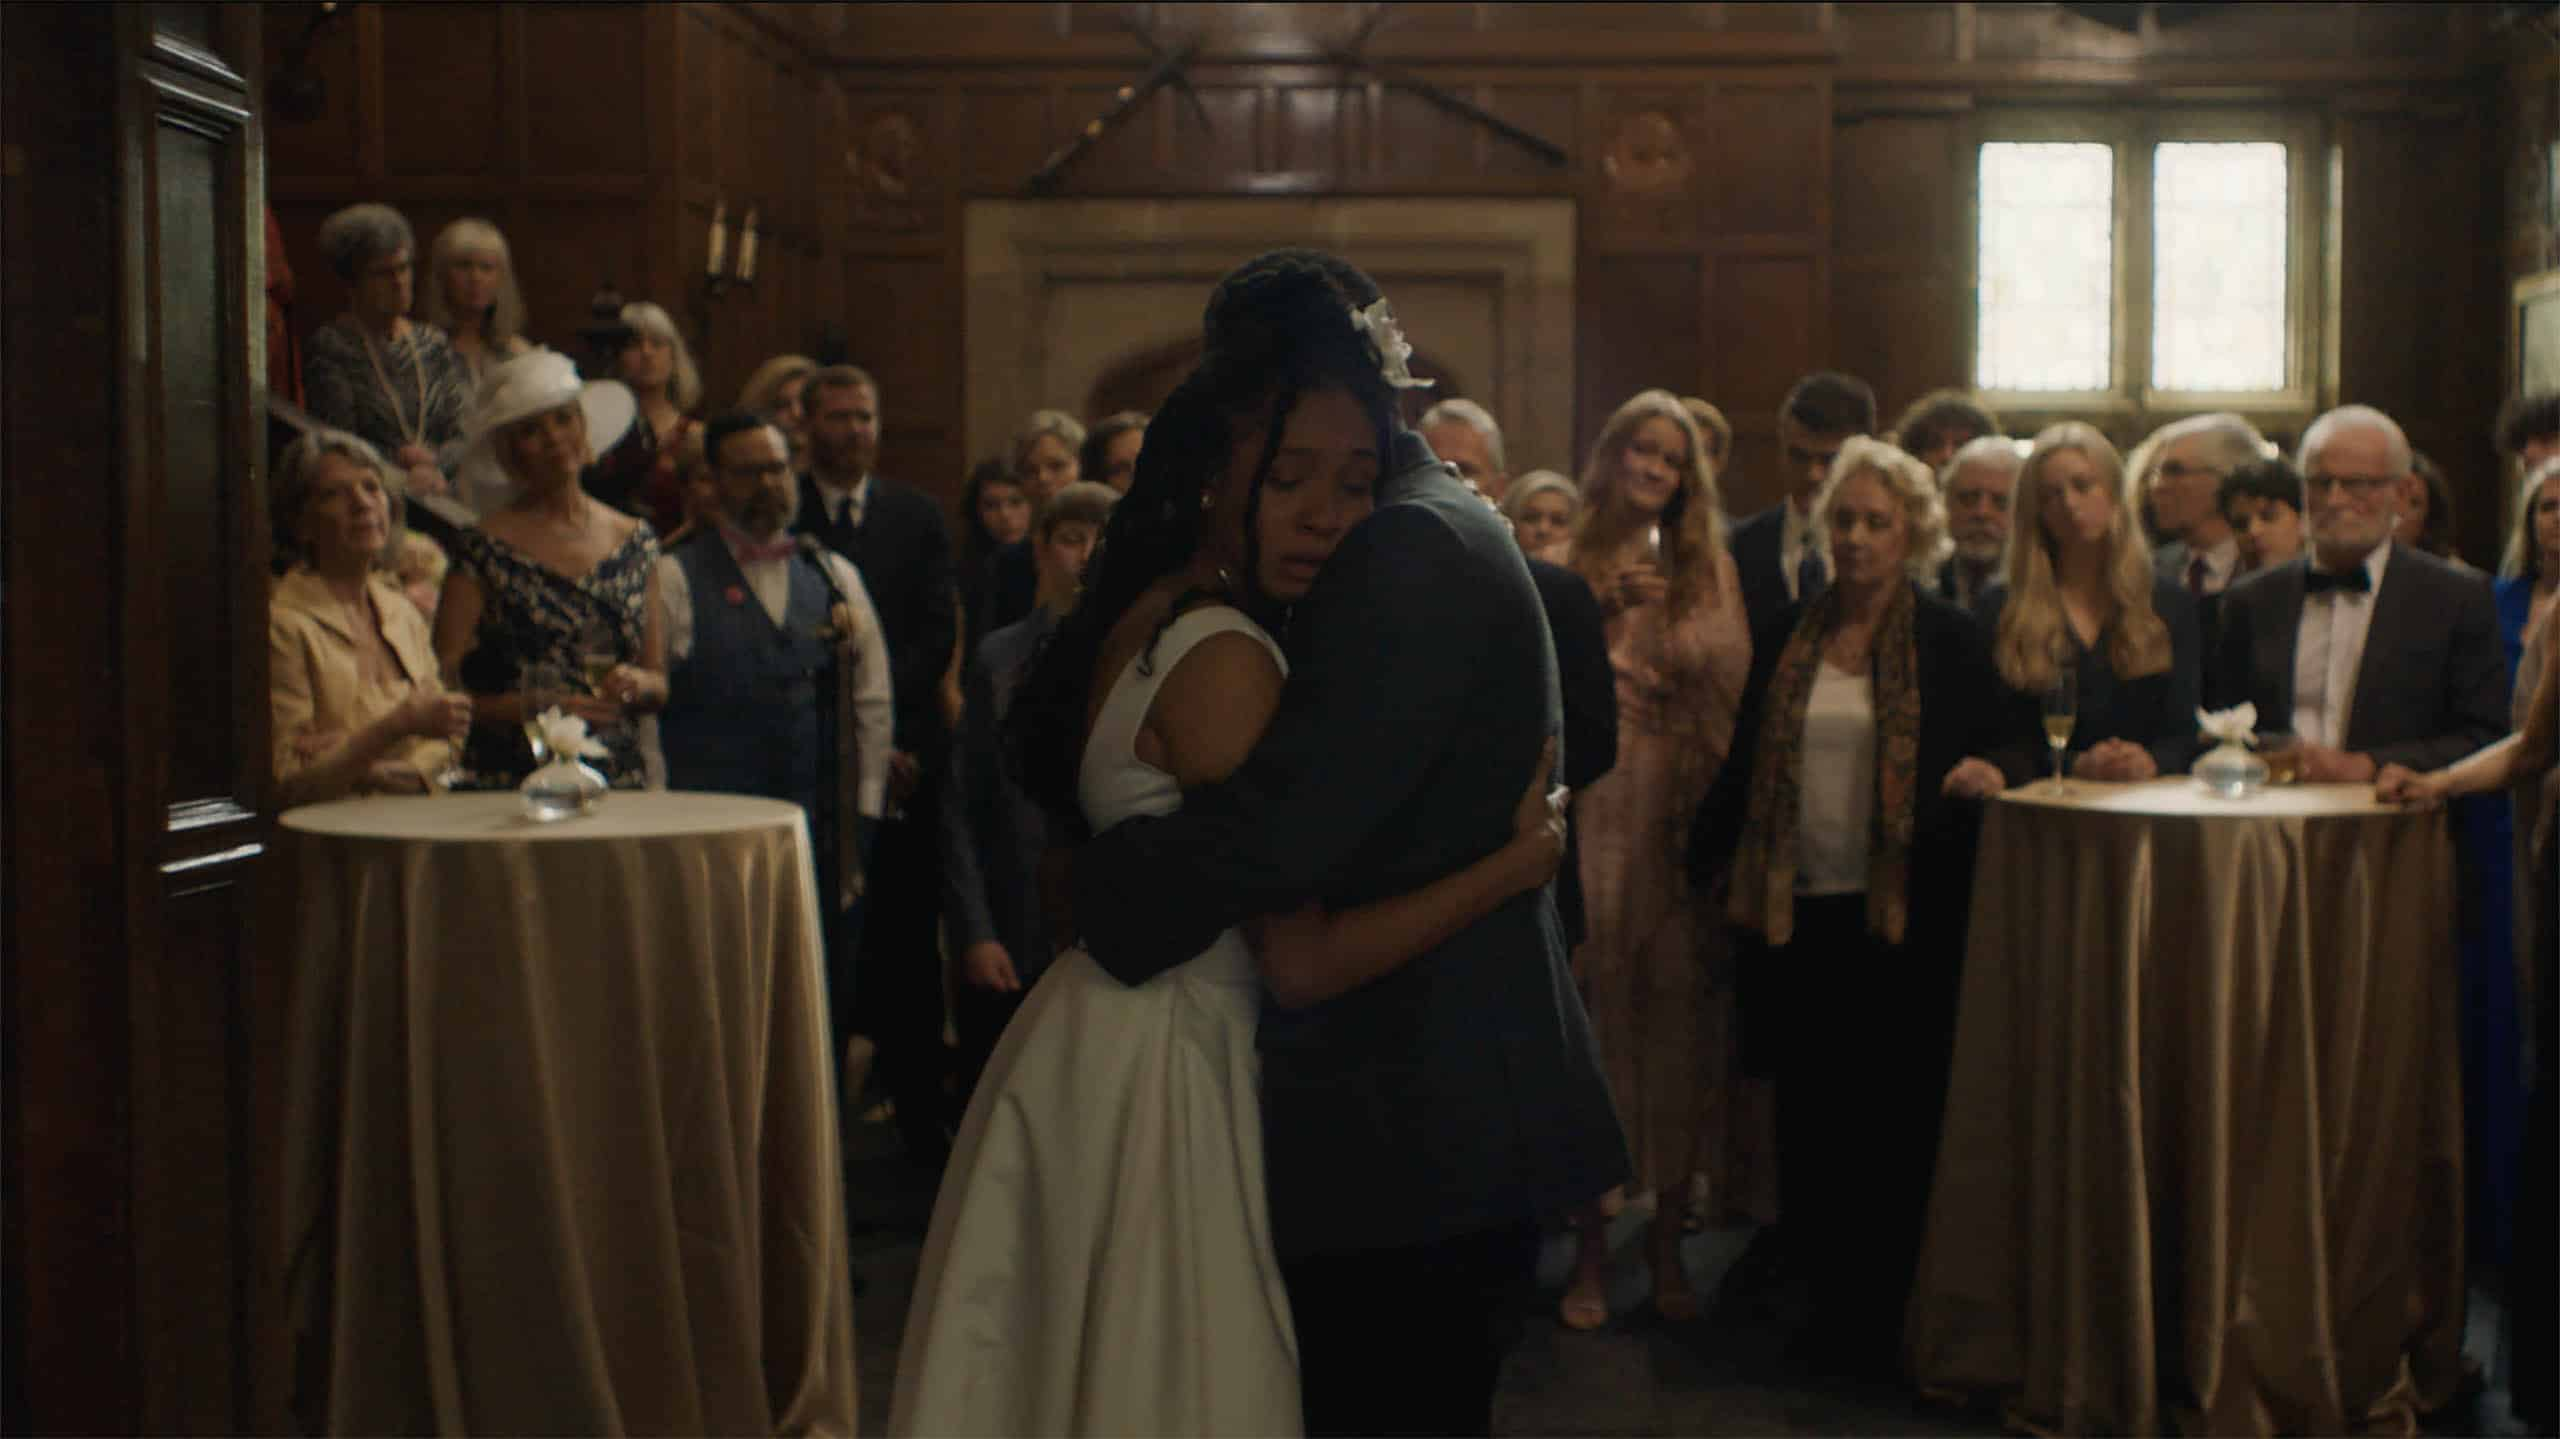 Bella (Nabiyah Be) and Bower (Curtiss Cook) hugging at Bella's wedding